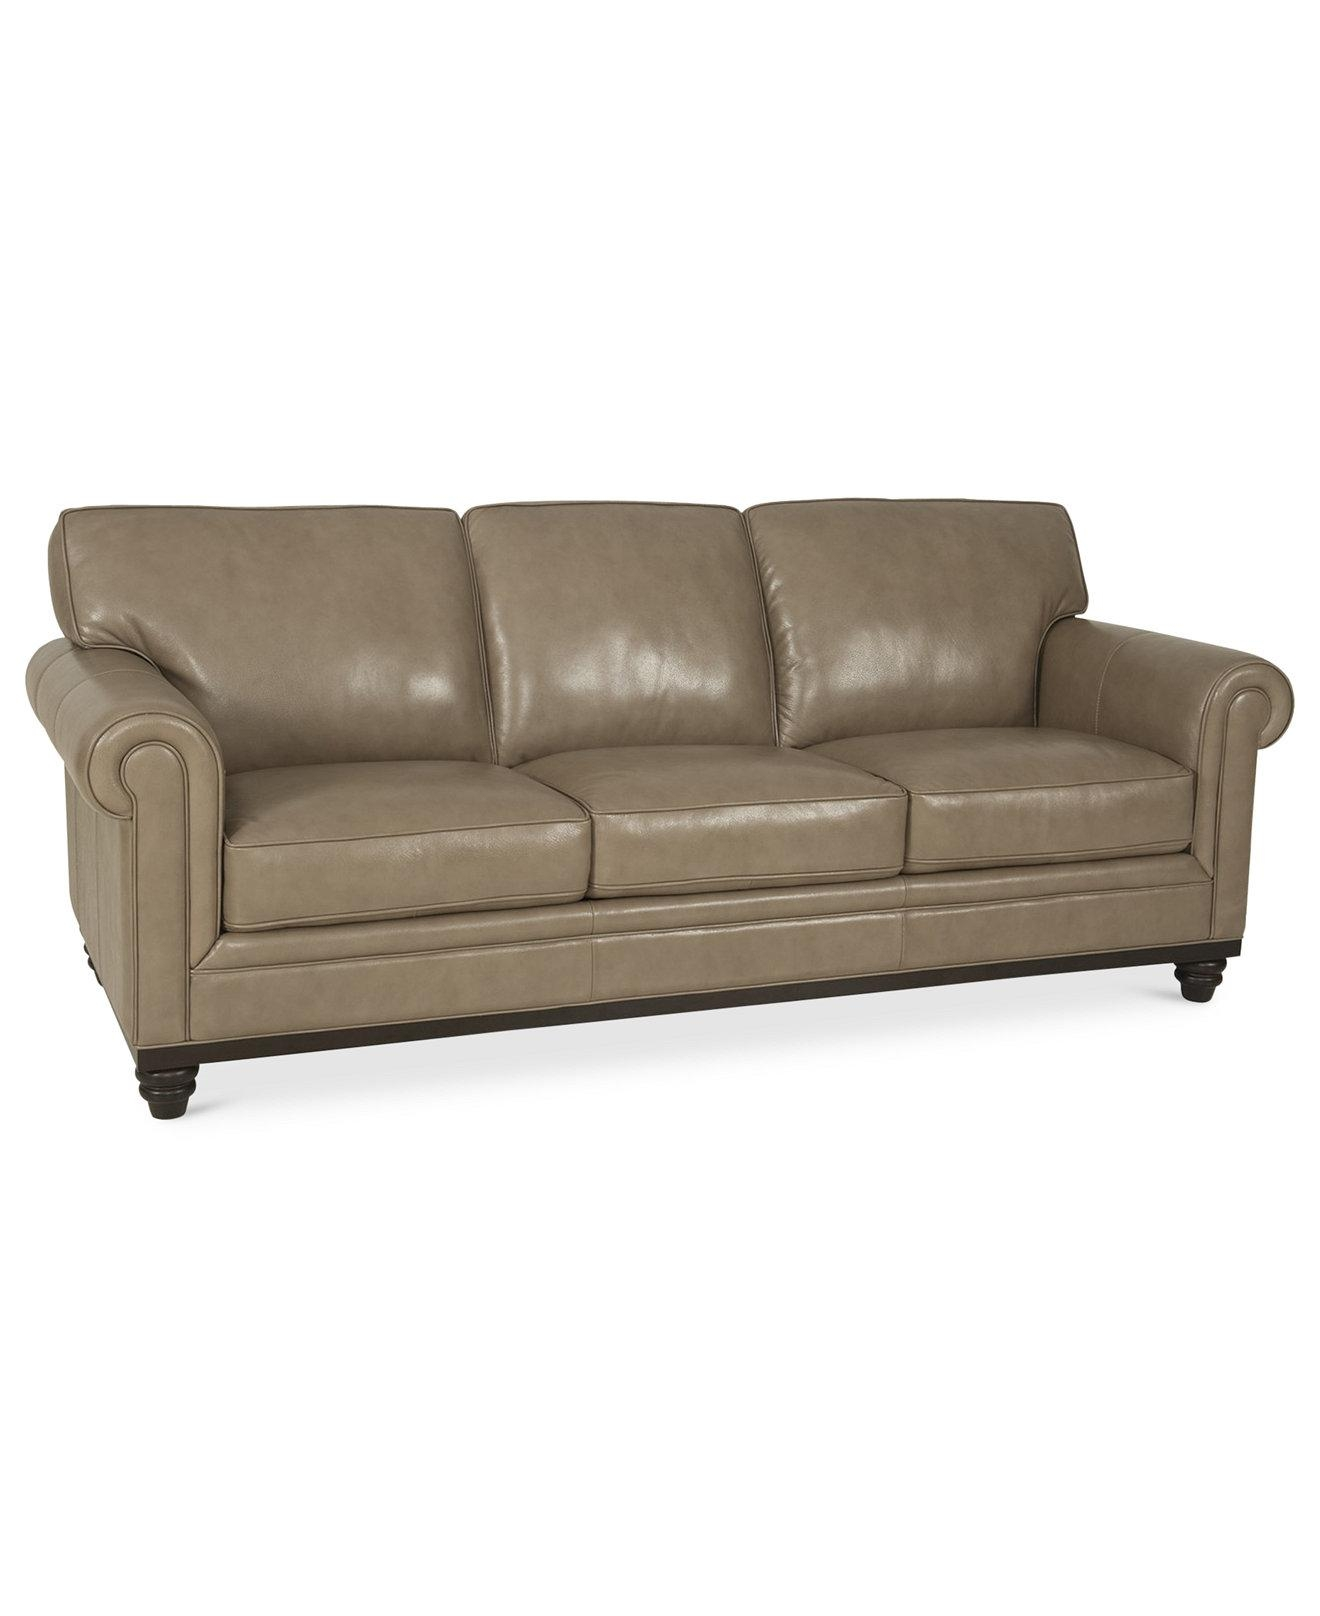 Sofas: Macys Leather Chair | Macys Furniture Store | Macys Sofa Bed Intended For Macys Sofas (View 13 of 20)